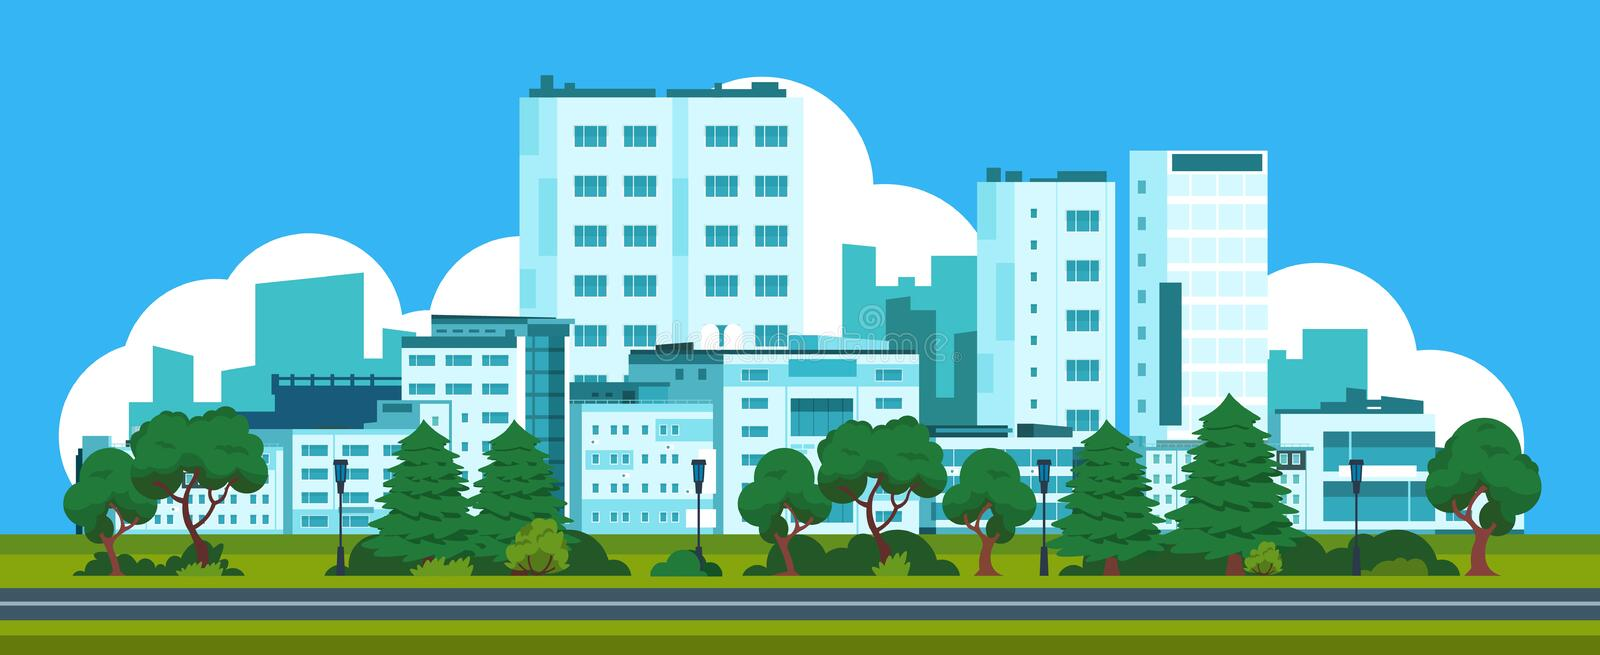 Cartoon panorama city. Park landscape with urban street and houses, cityscape with skyline of office buildings. Vector. Illustrations exterior city house royalty free illustration